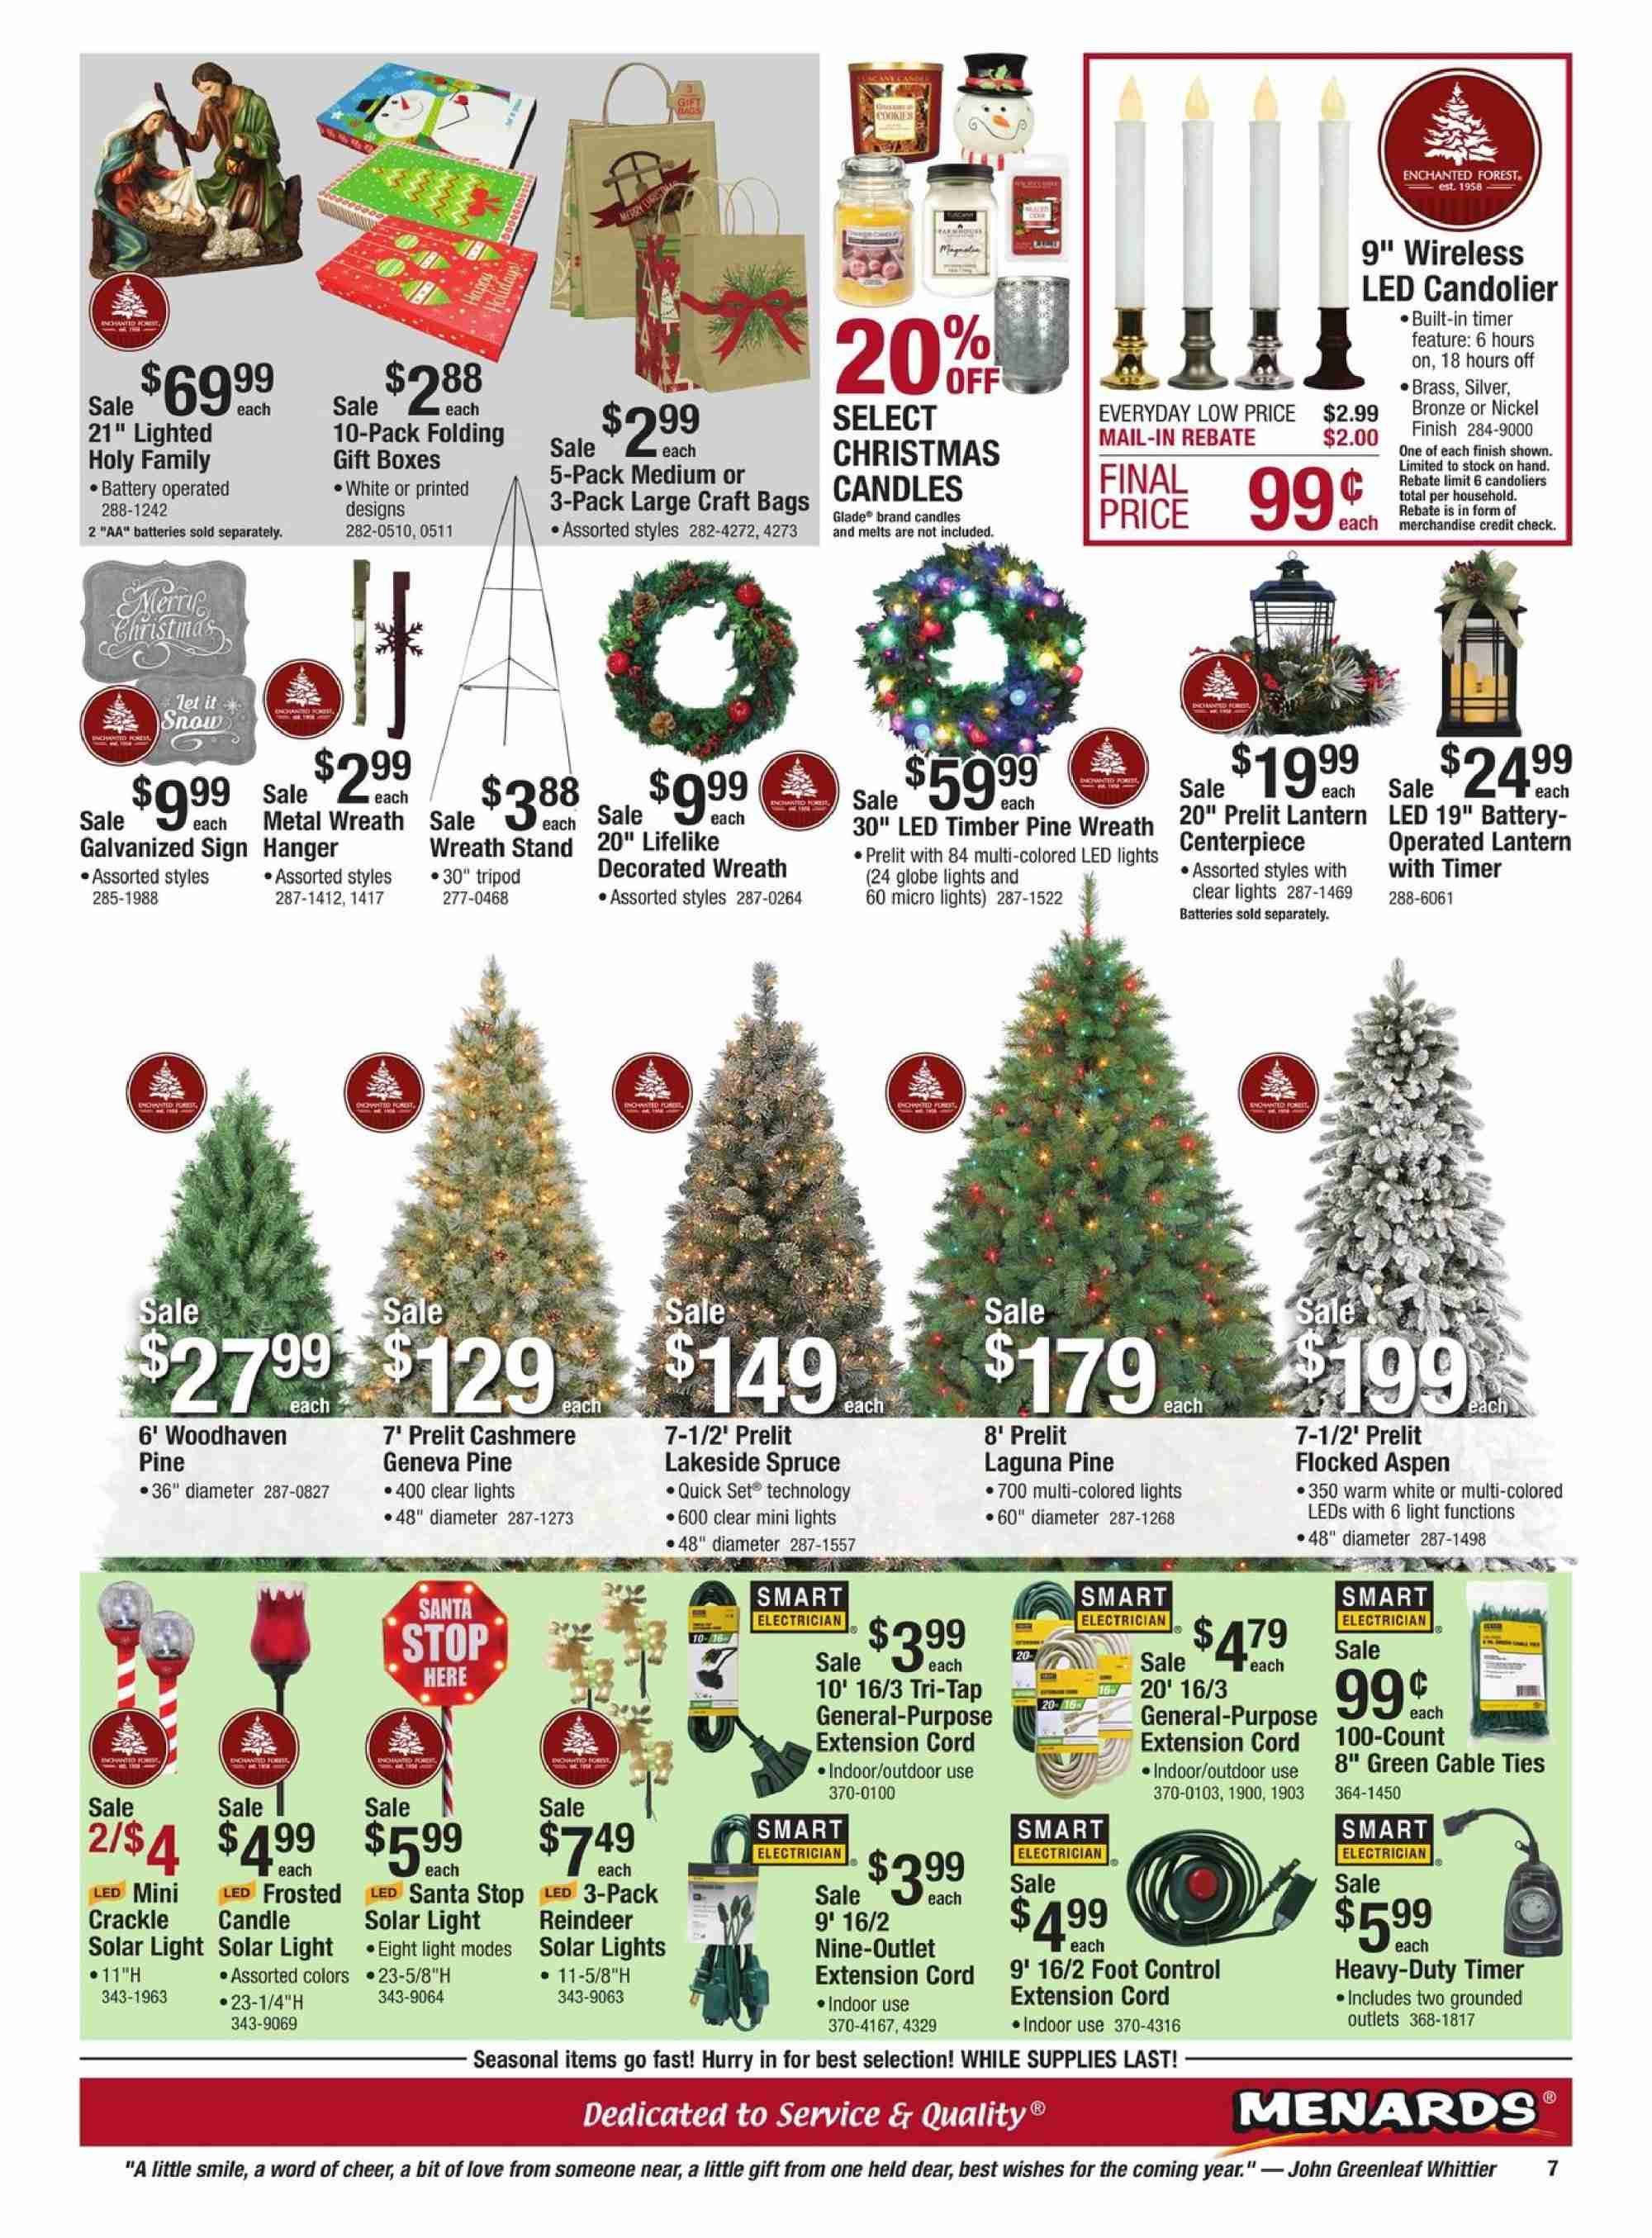 Menards Flyer - 11.18.2018 - 12.01.2018 - Sales products - bag, battery, box, extension cord, led light, reindeer, santa, solar light, stand, timer, tripod, wreath, pine, quick. Page 7.